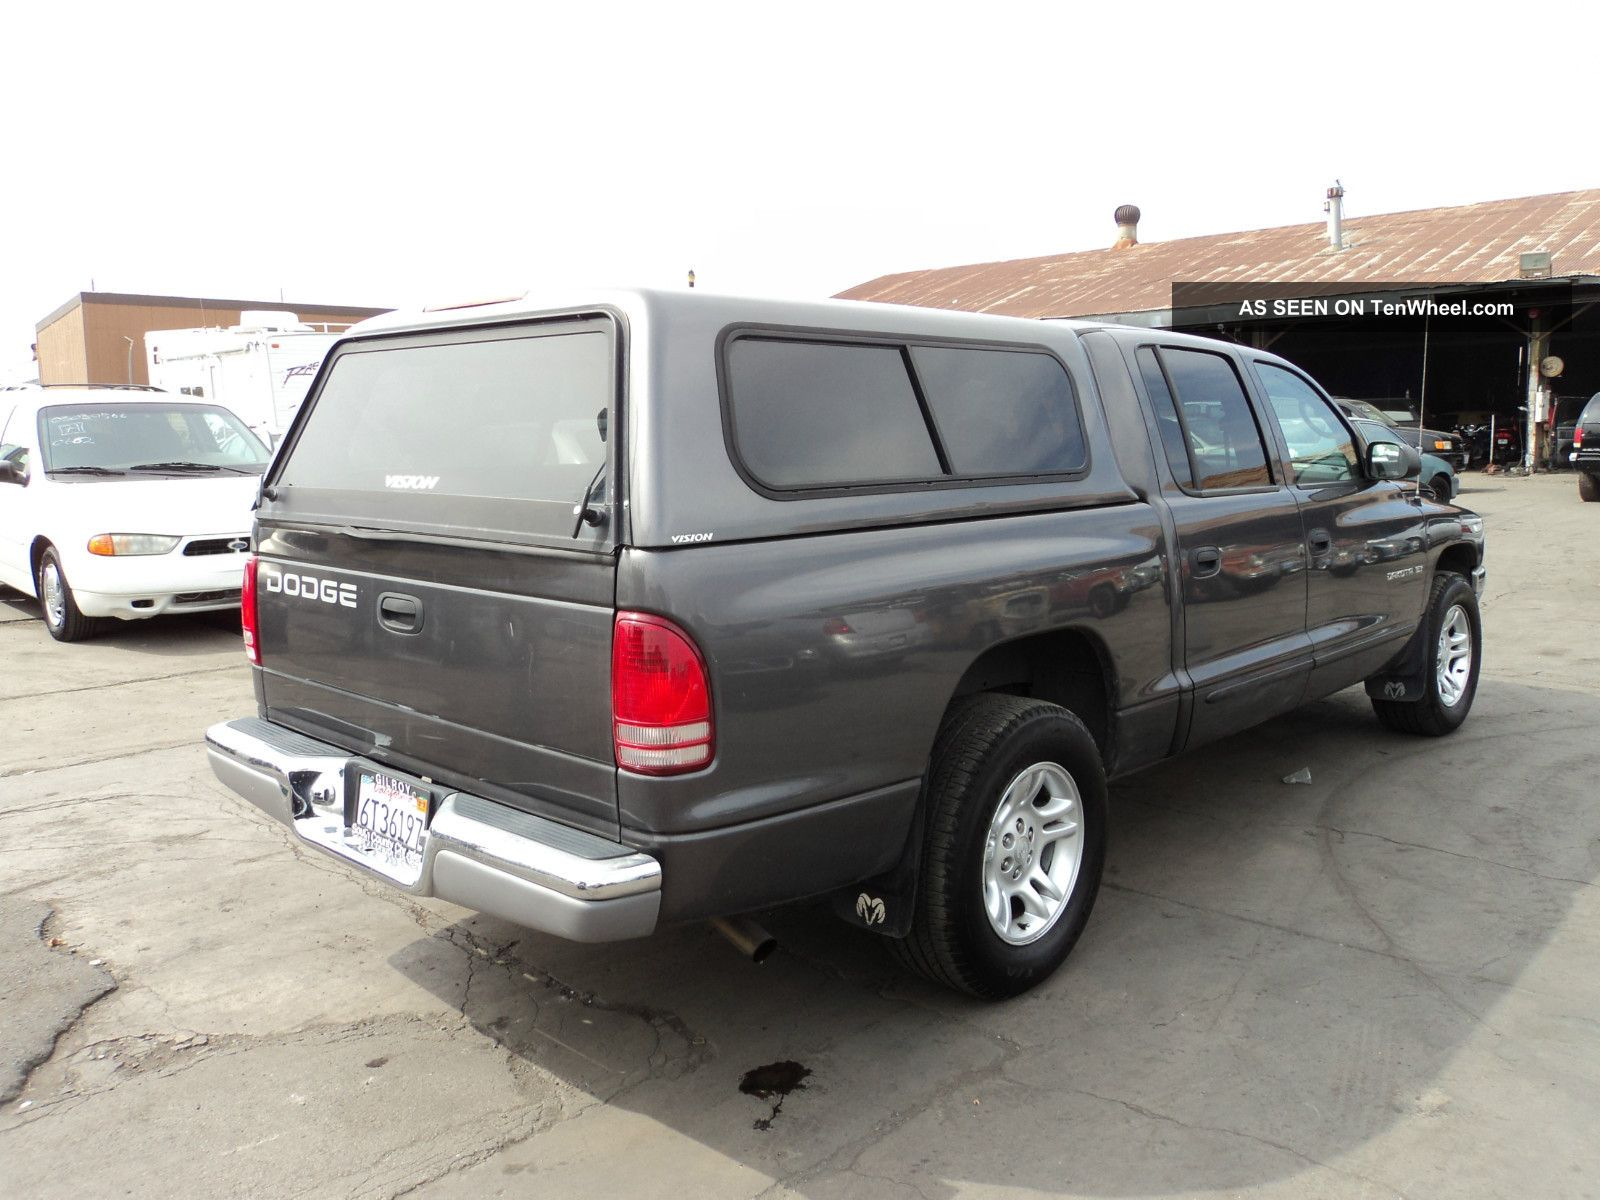 2001 dodge dakota slt crew cab pickup 4 door 3 9l. Black Bedroom Furniture Sets. Home Design Ideas